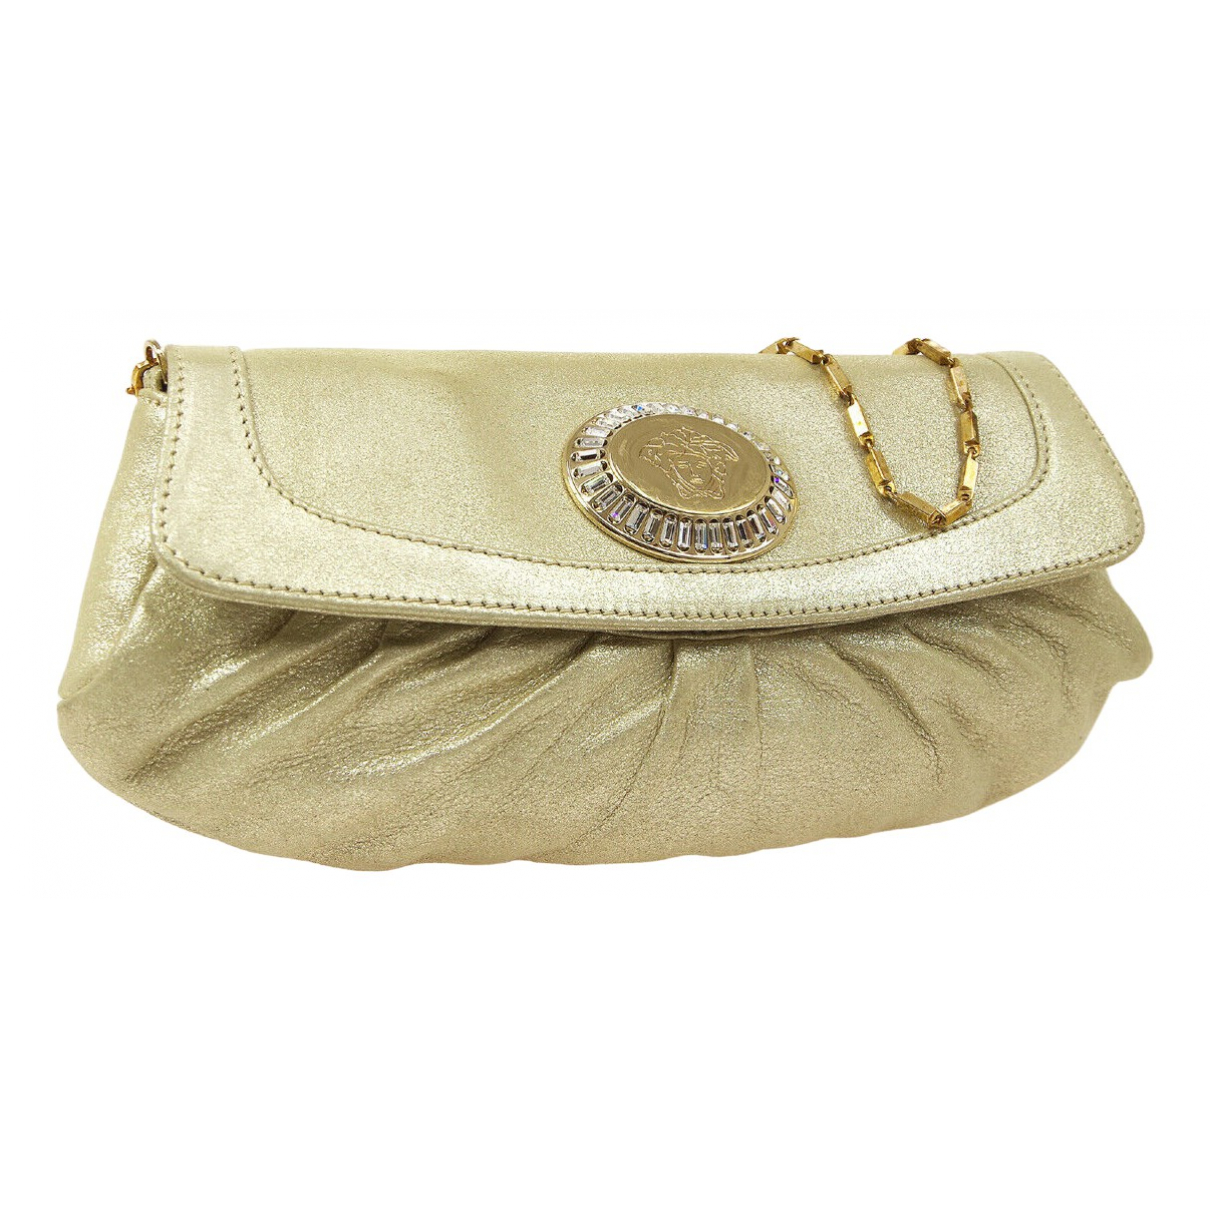 Versace \N Gold Leather Clutch bag for Women \N